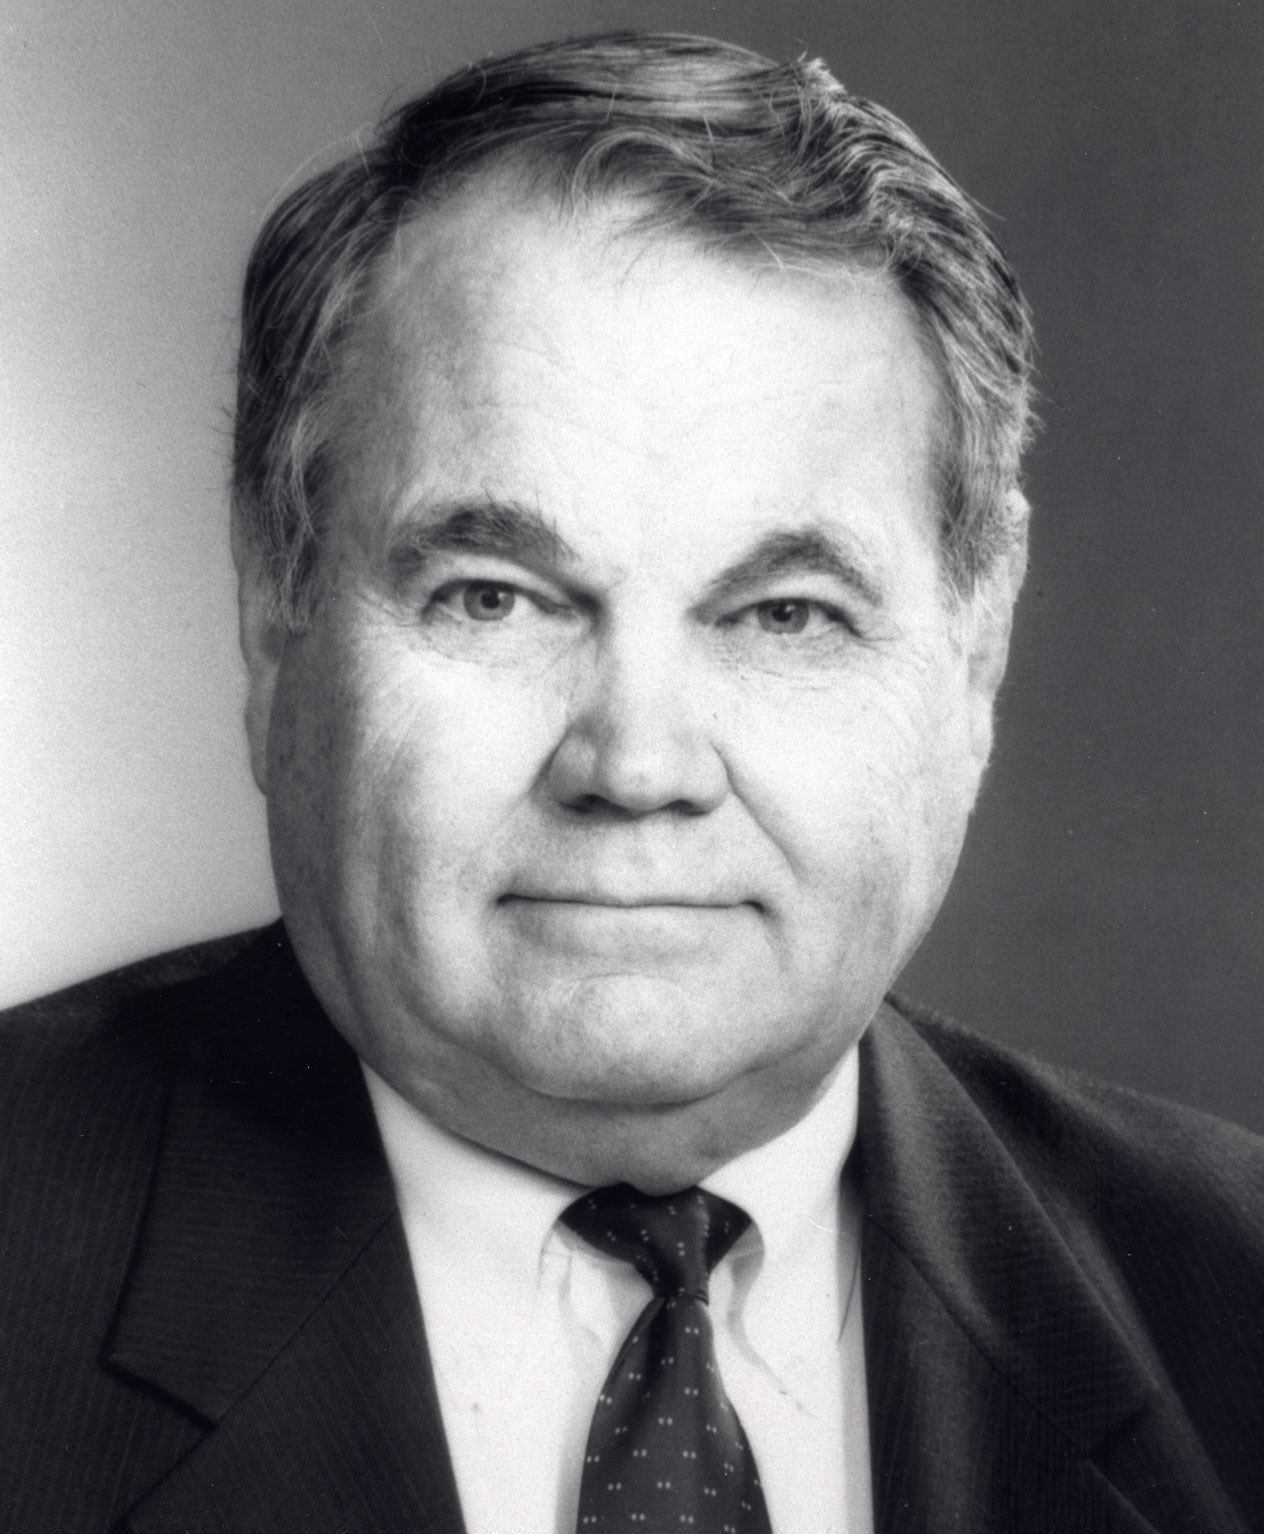 Roll of Honor - Fred M. Fehsenfeld, Sr.